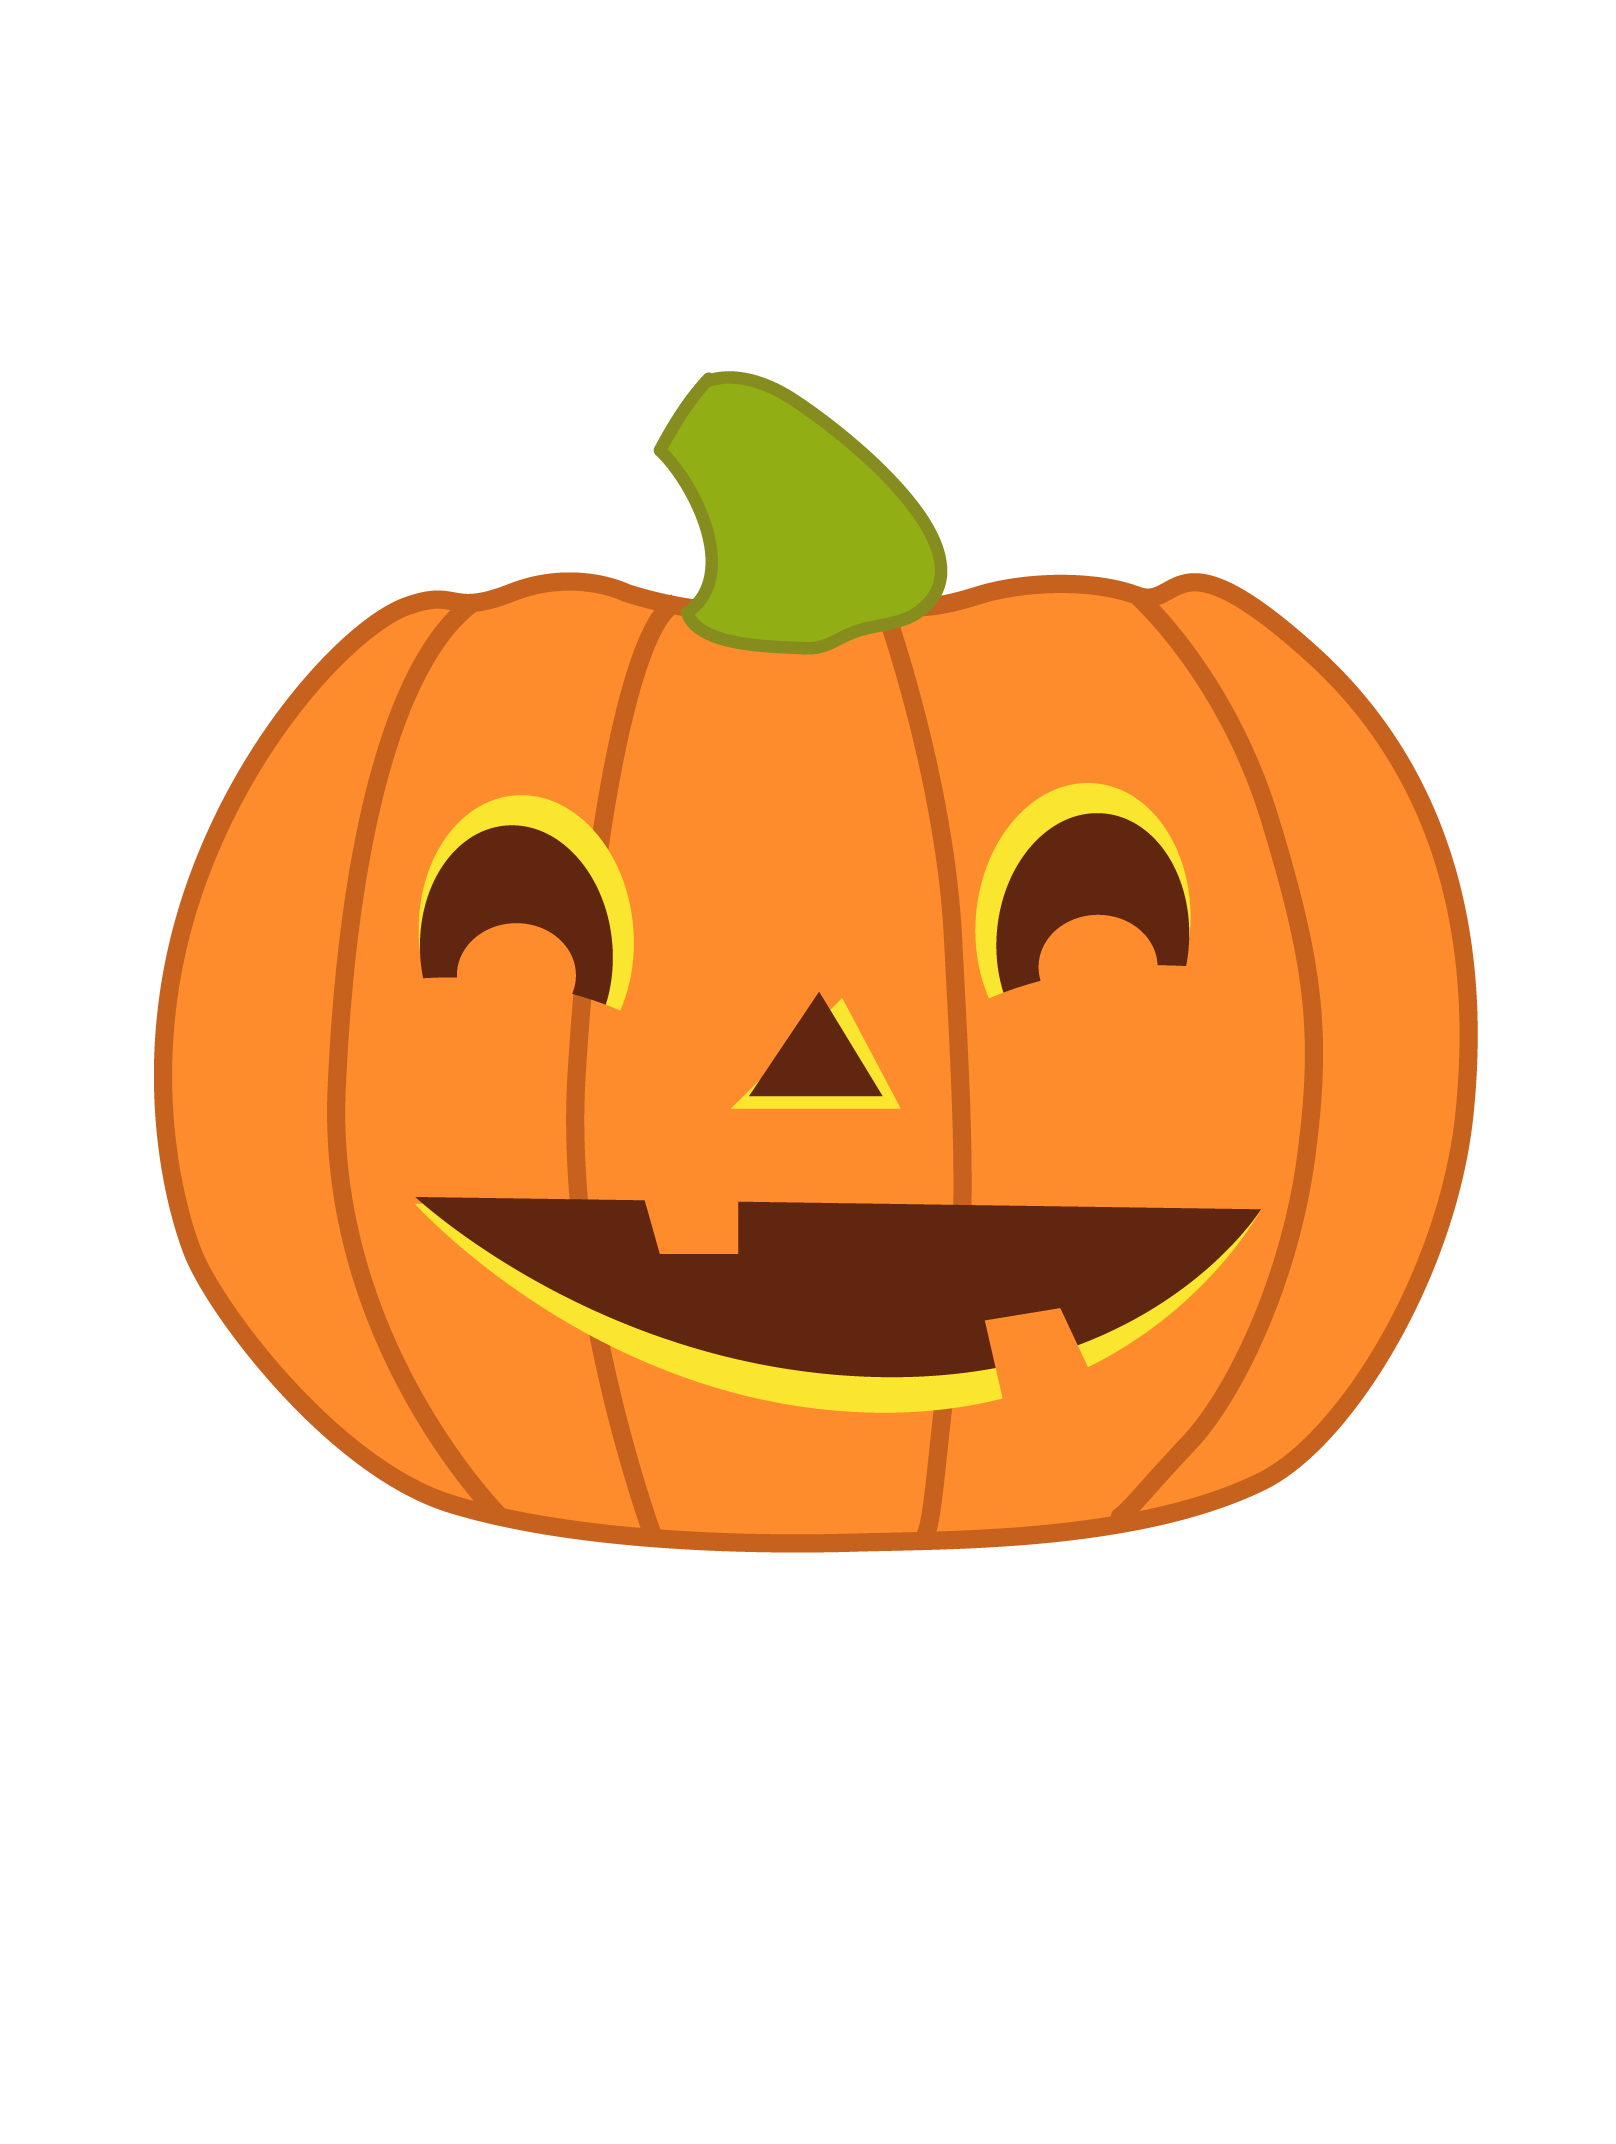 Pumpkin with cut for face clipart clip library cute halloween pumpkin clipart - Google Search | Library-Clipart ... clip library